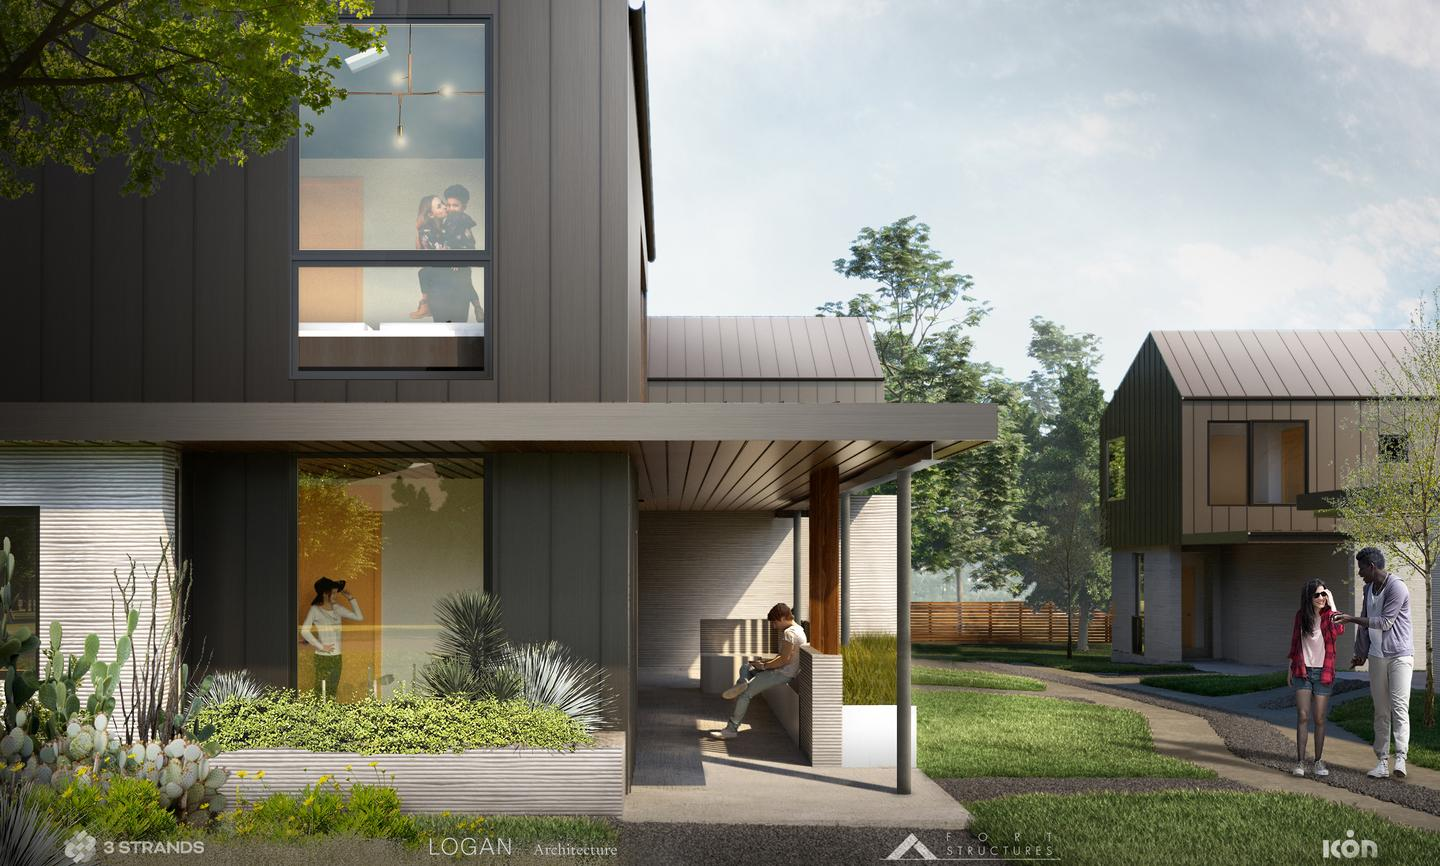 The 3D-printed homes were designed by Logan Architecture